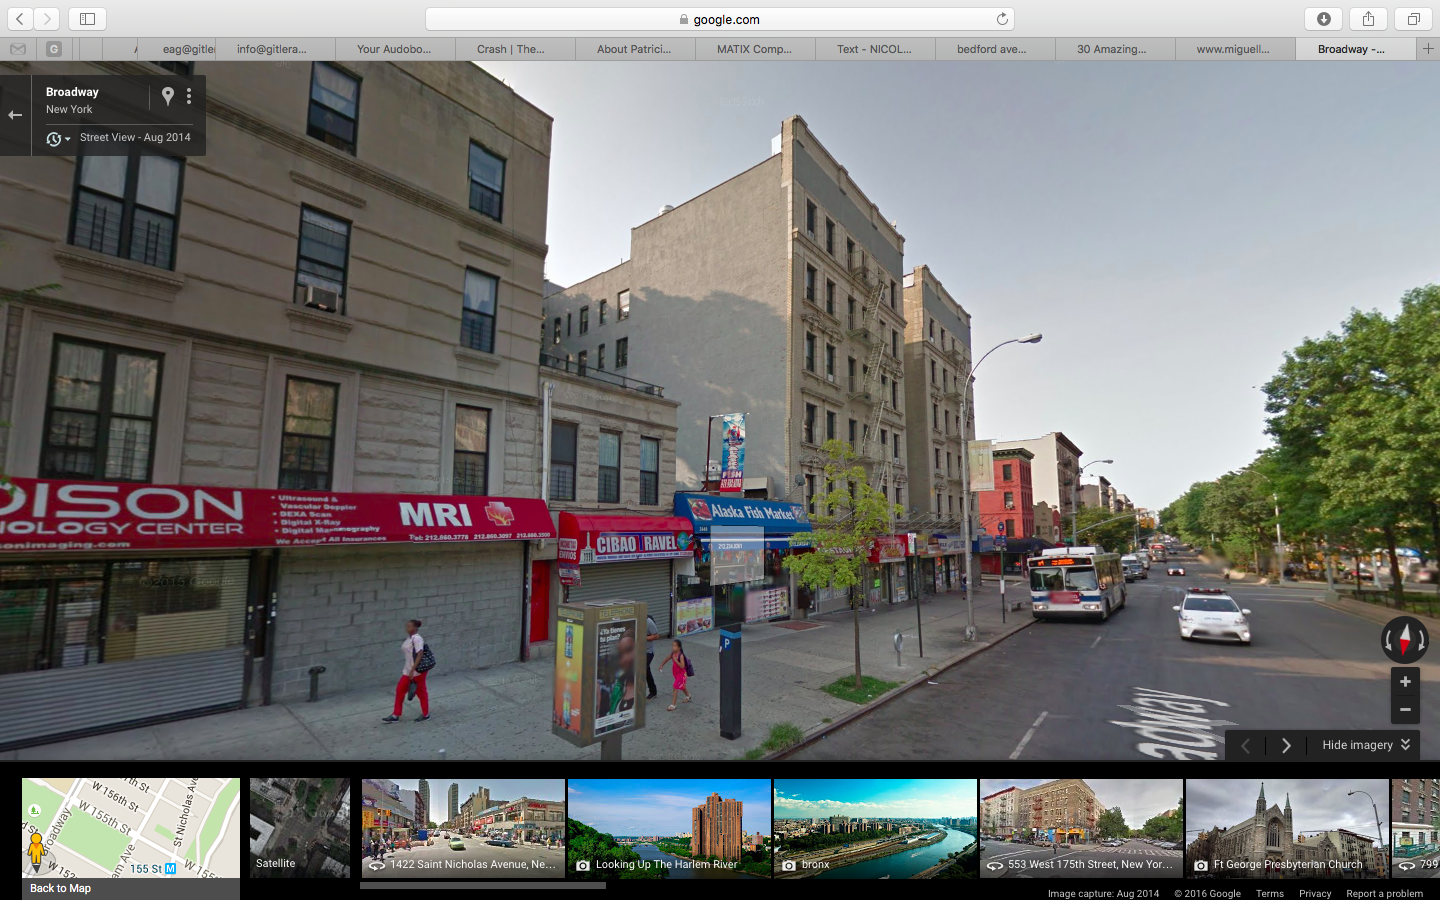 broadway - 151 and 152 1/2